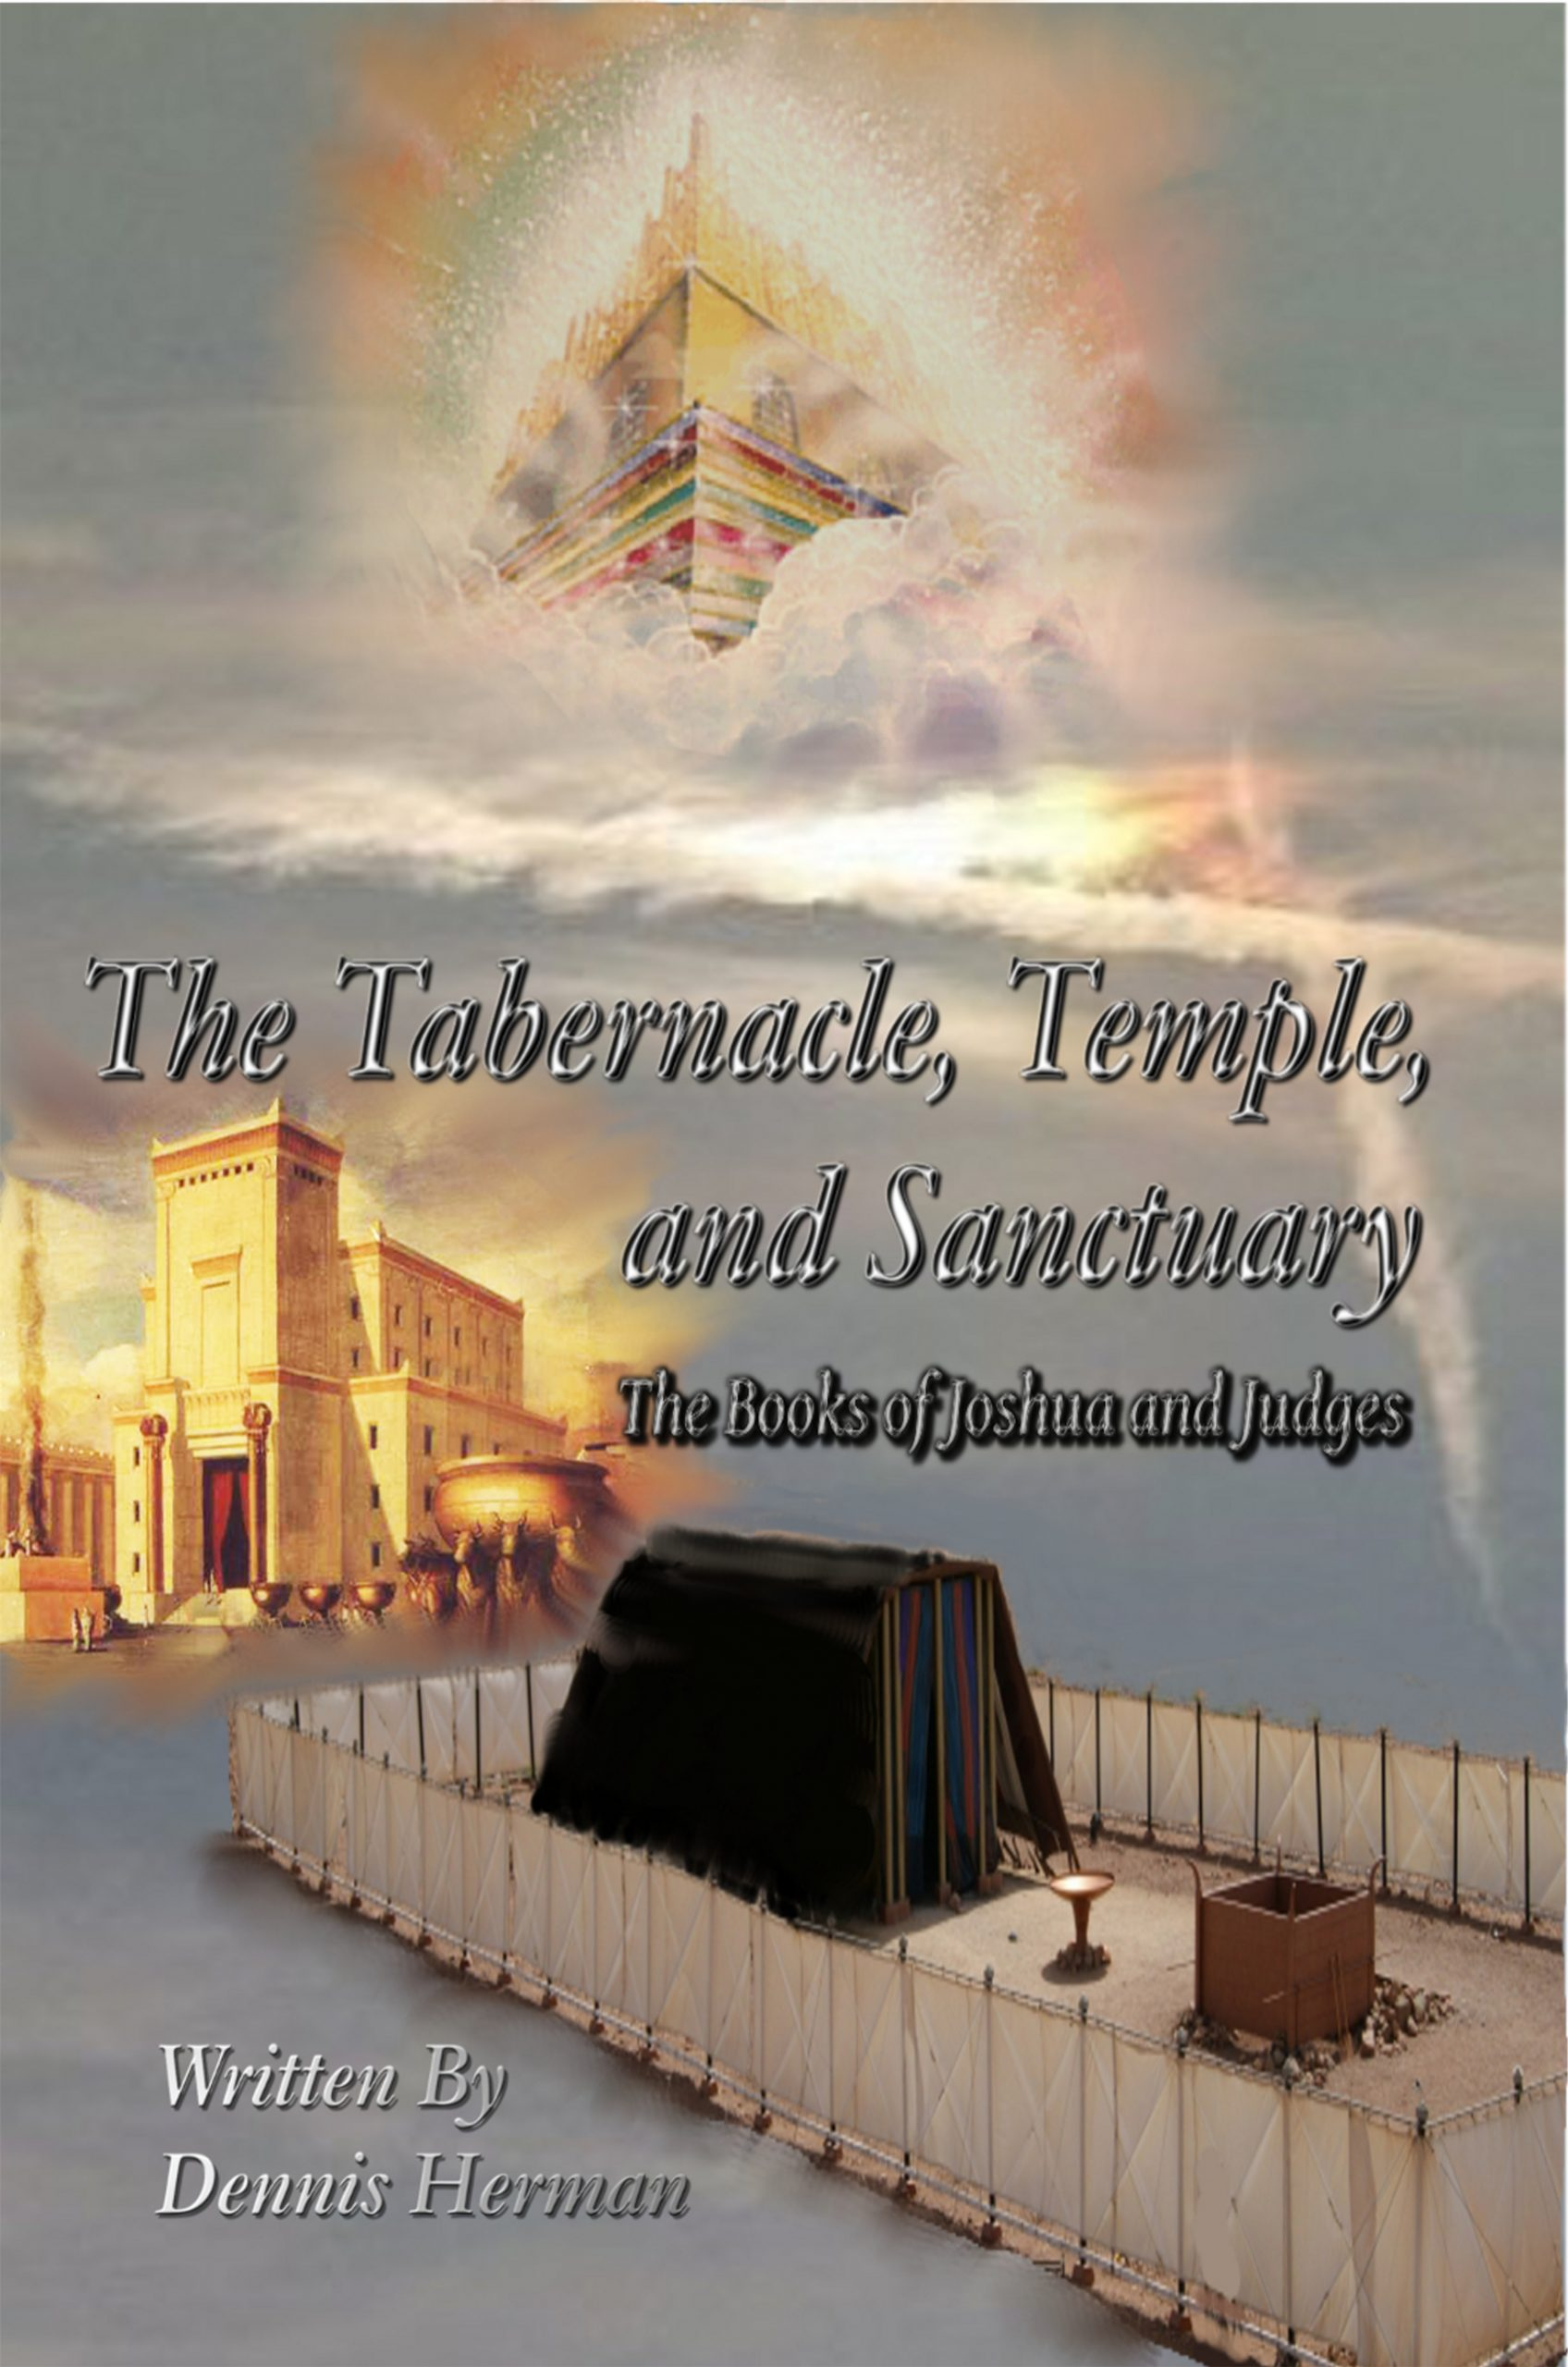 The Tabernacle, Temple, and Sanctuary: The Books of Joshua and Judges